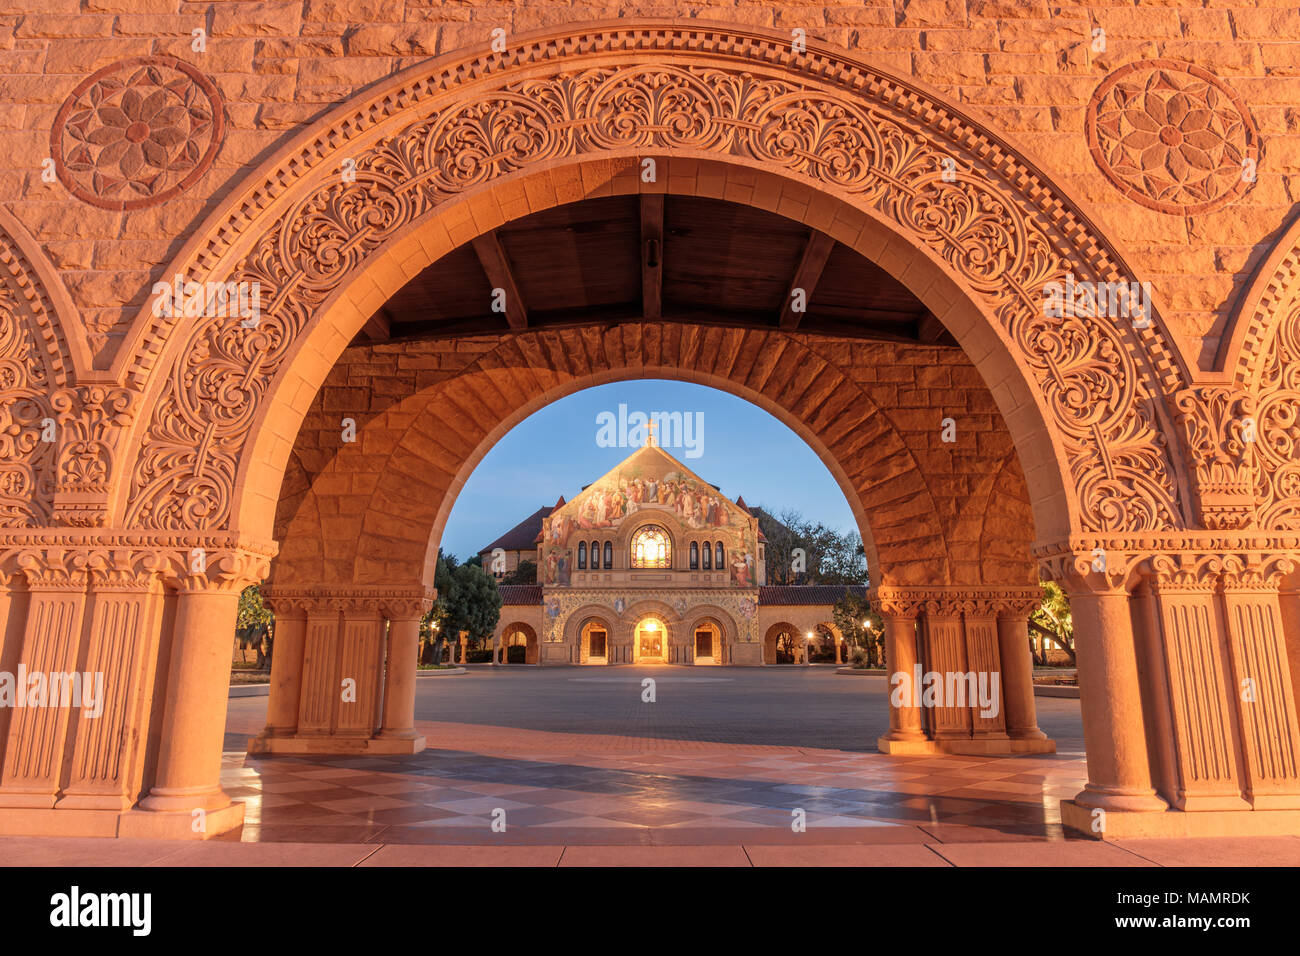 Stanford, California - March 28, 2018: North facade of Stanford Memorial Church from the Memorial Court of the Main Quad - Stock Image